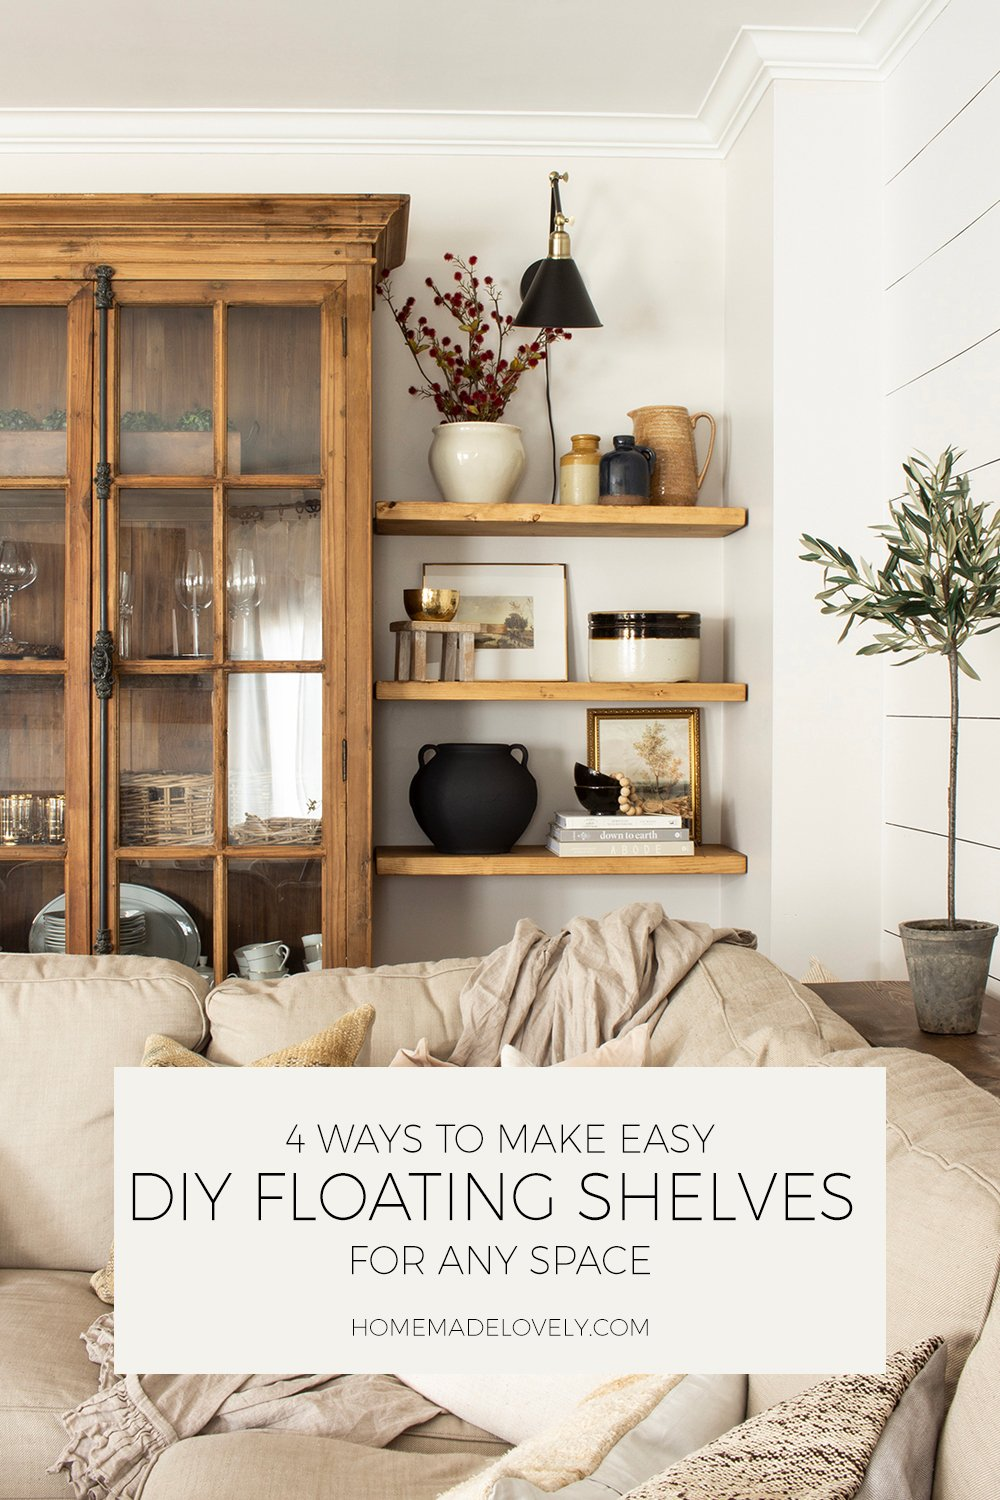 4 ways to make easy diy floating shelves for any space pin 1